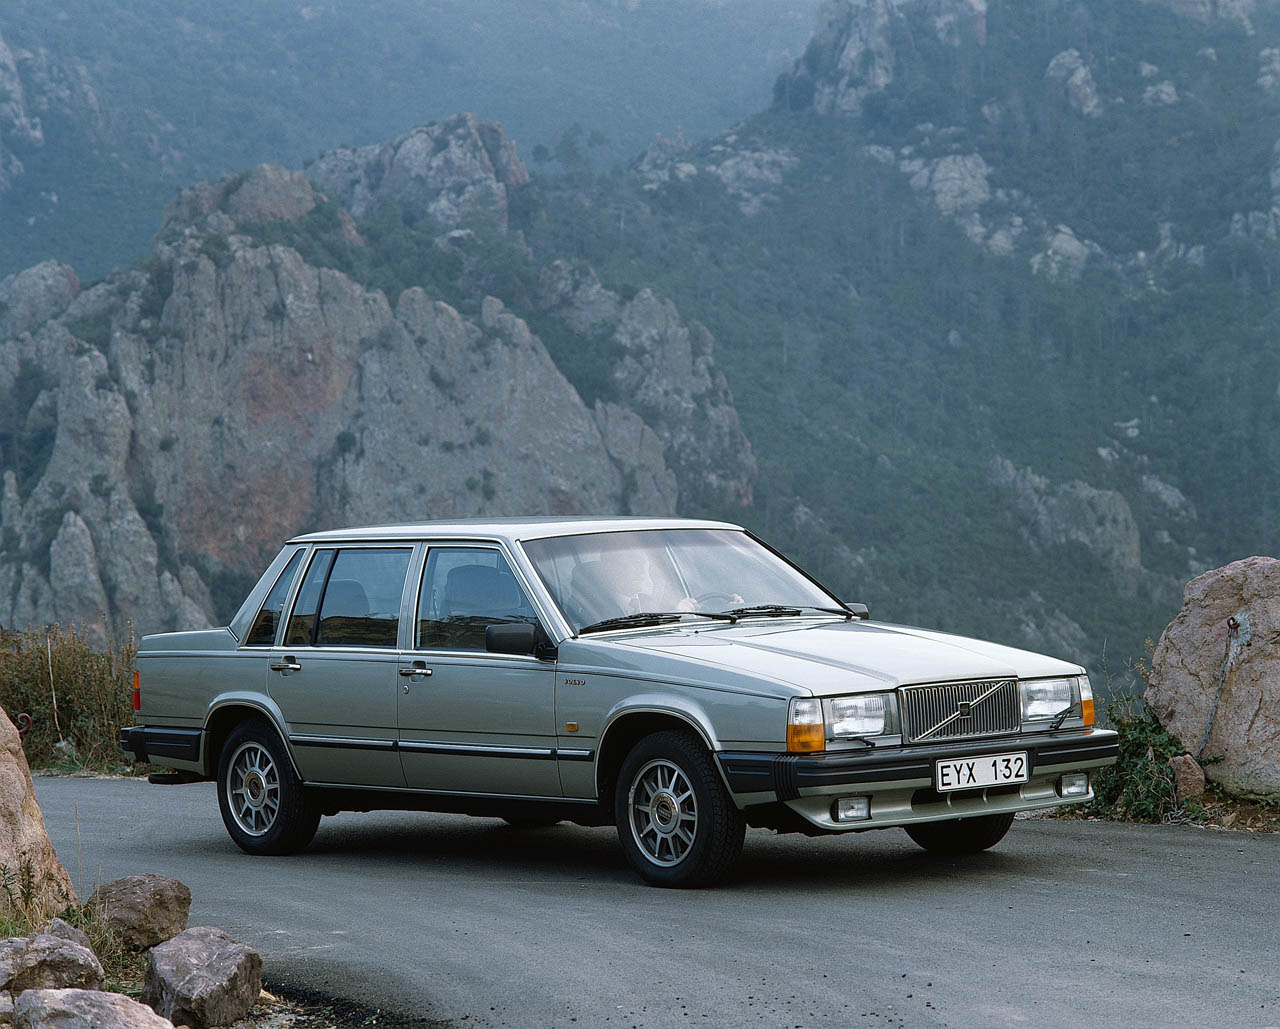 Volvo marks 30th anniversary of the 760 - Autoblog